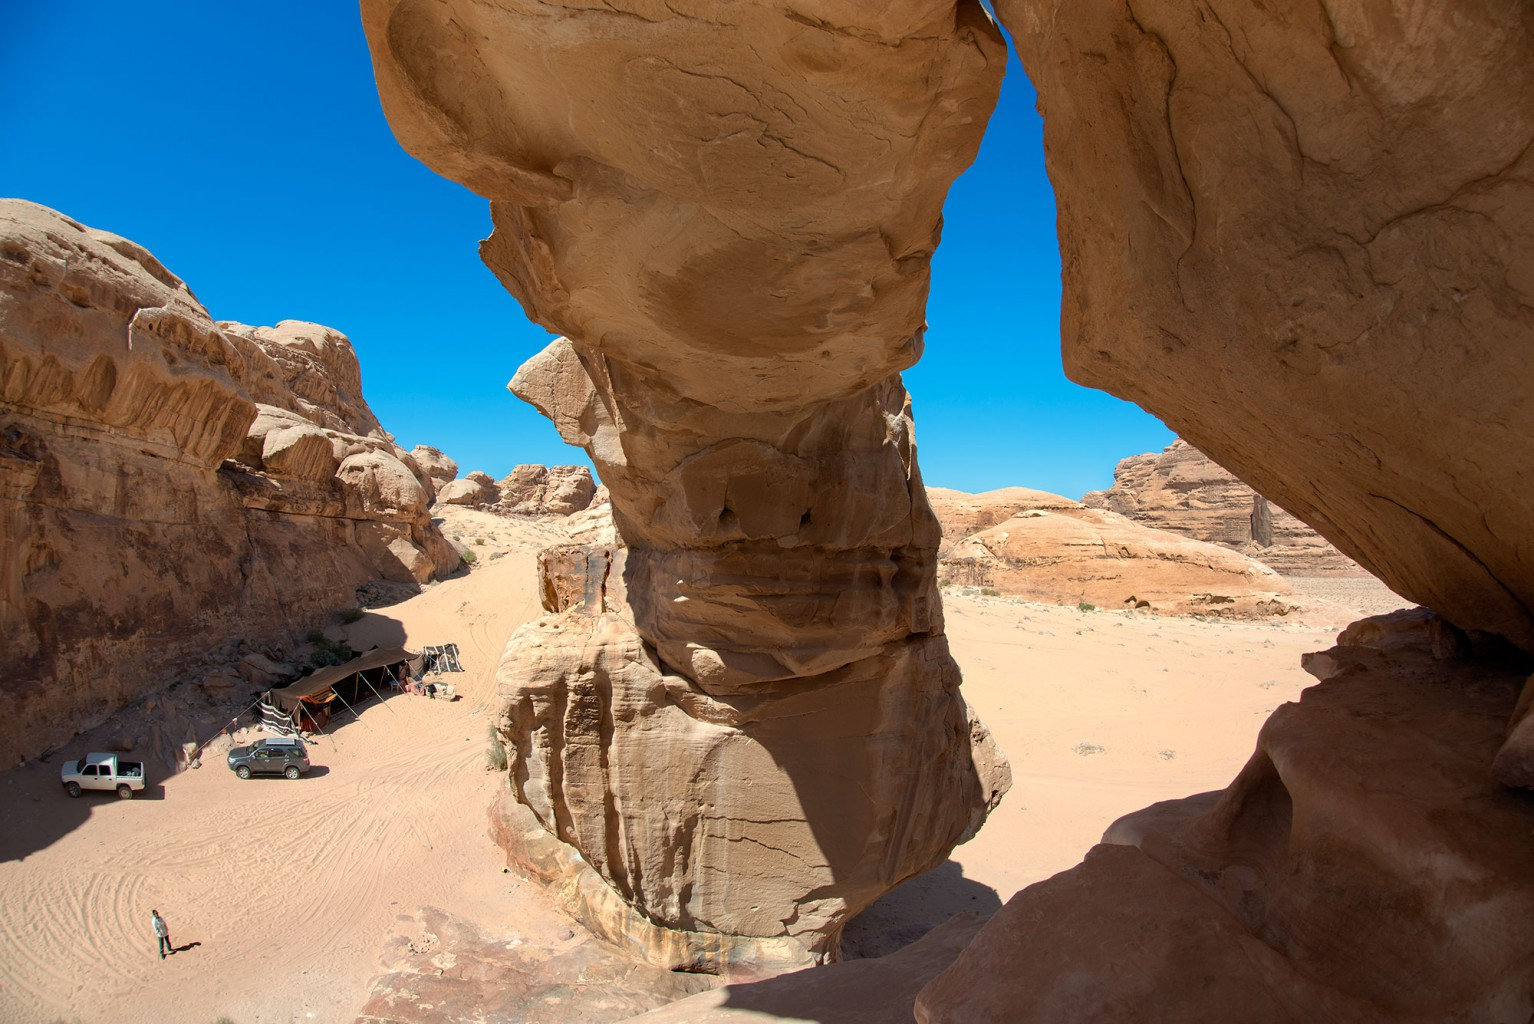 Incredible Sandstone Bridges of Wadi Rum